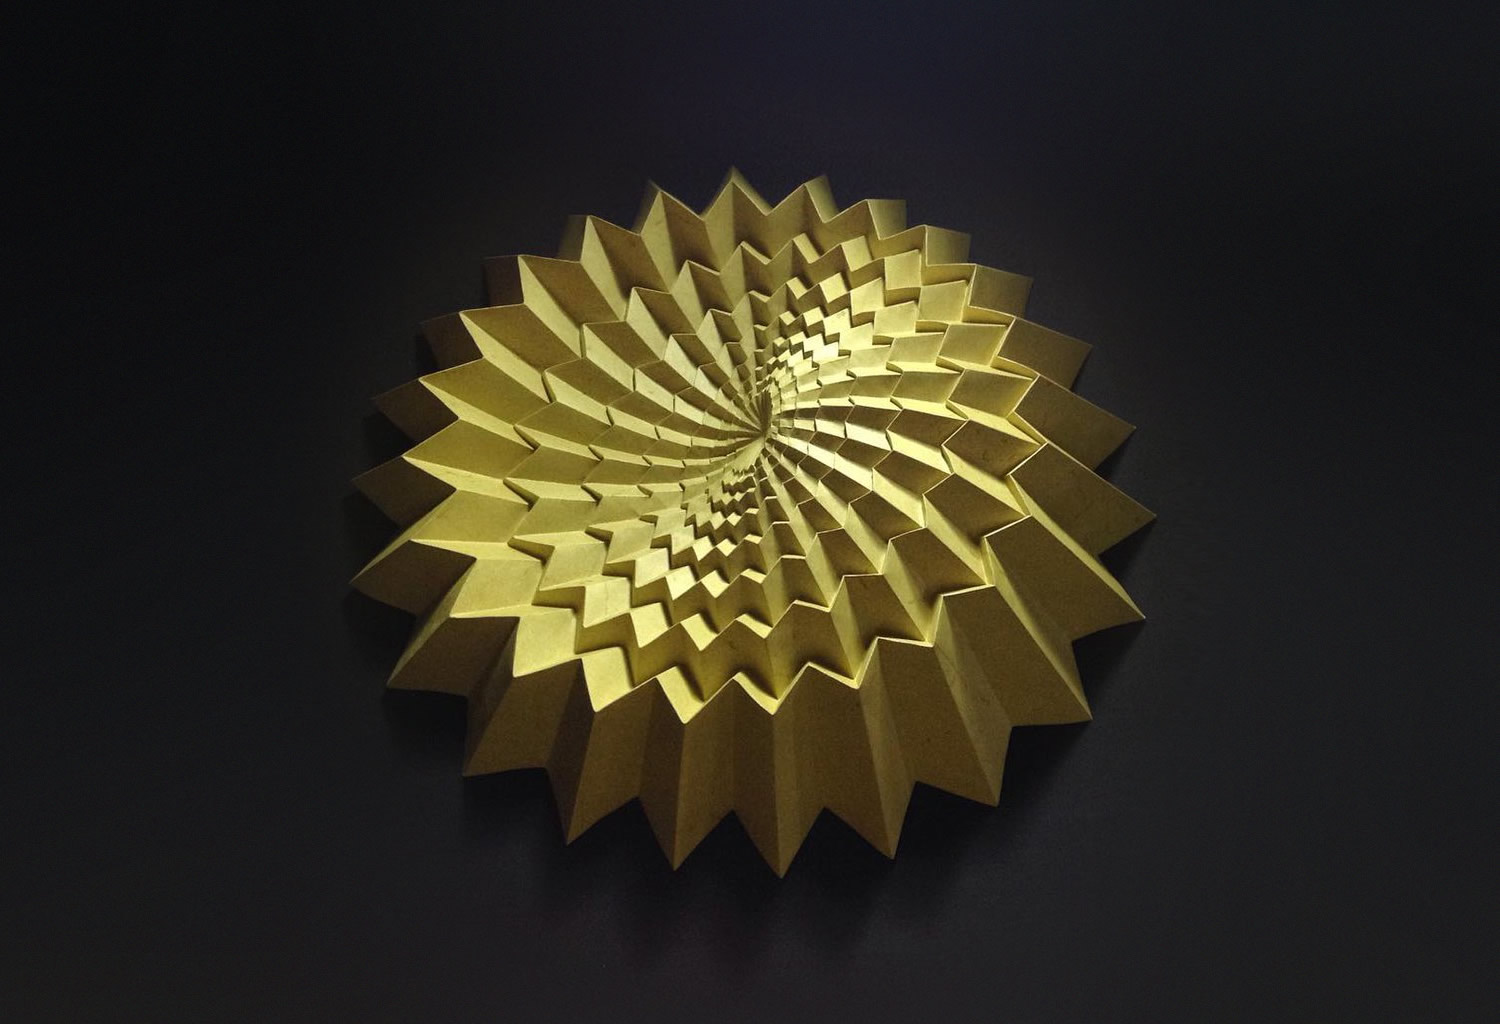 yellow fractal origami by robby kraft, inspired by Robert J. Lang